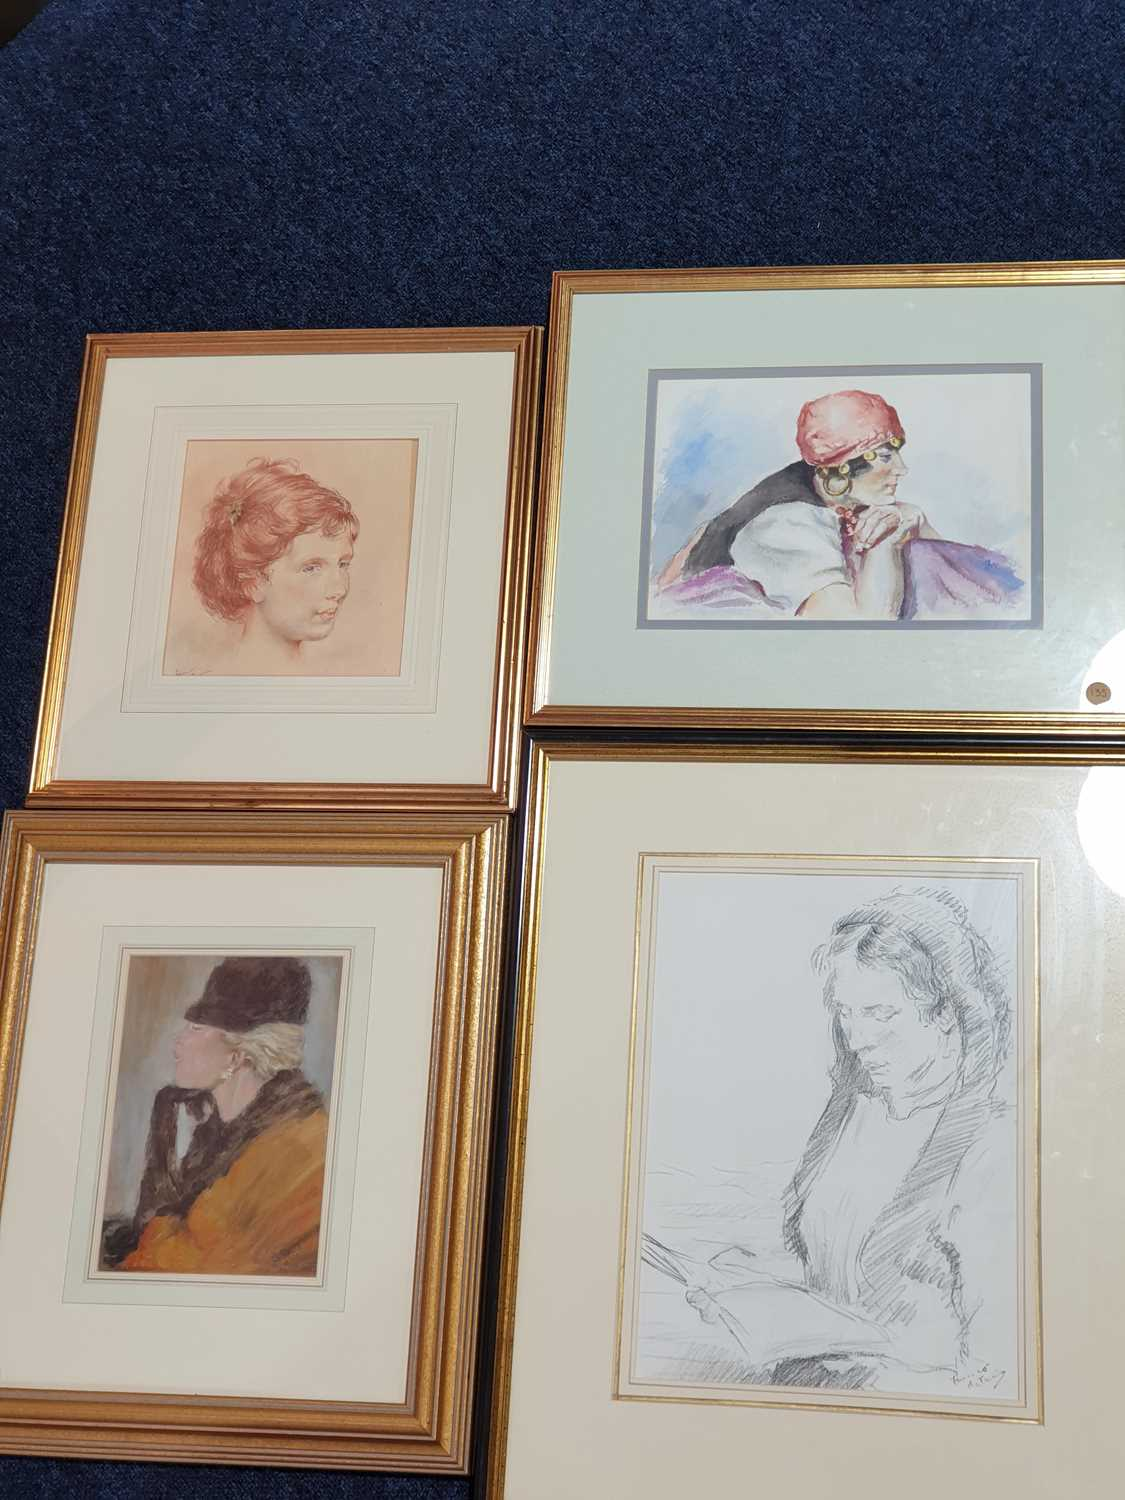 Franco Matania (1922-2006) Italian/British, a group of four pencil/pastel on paper sketches of women